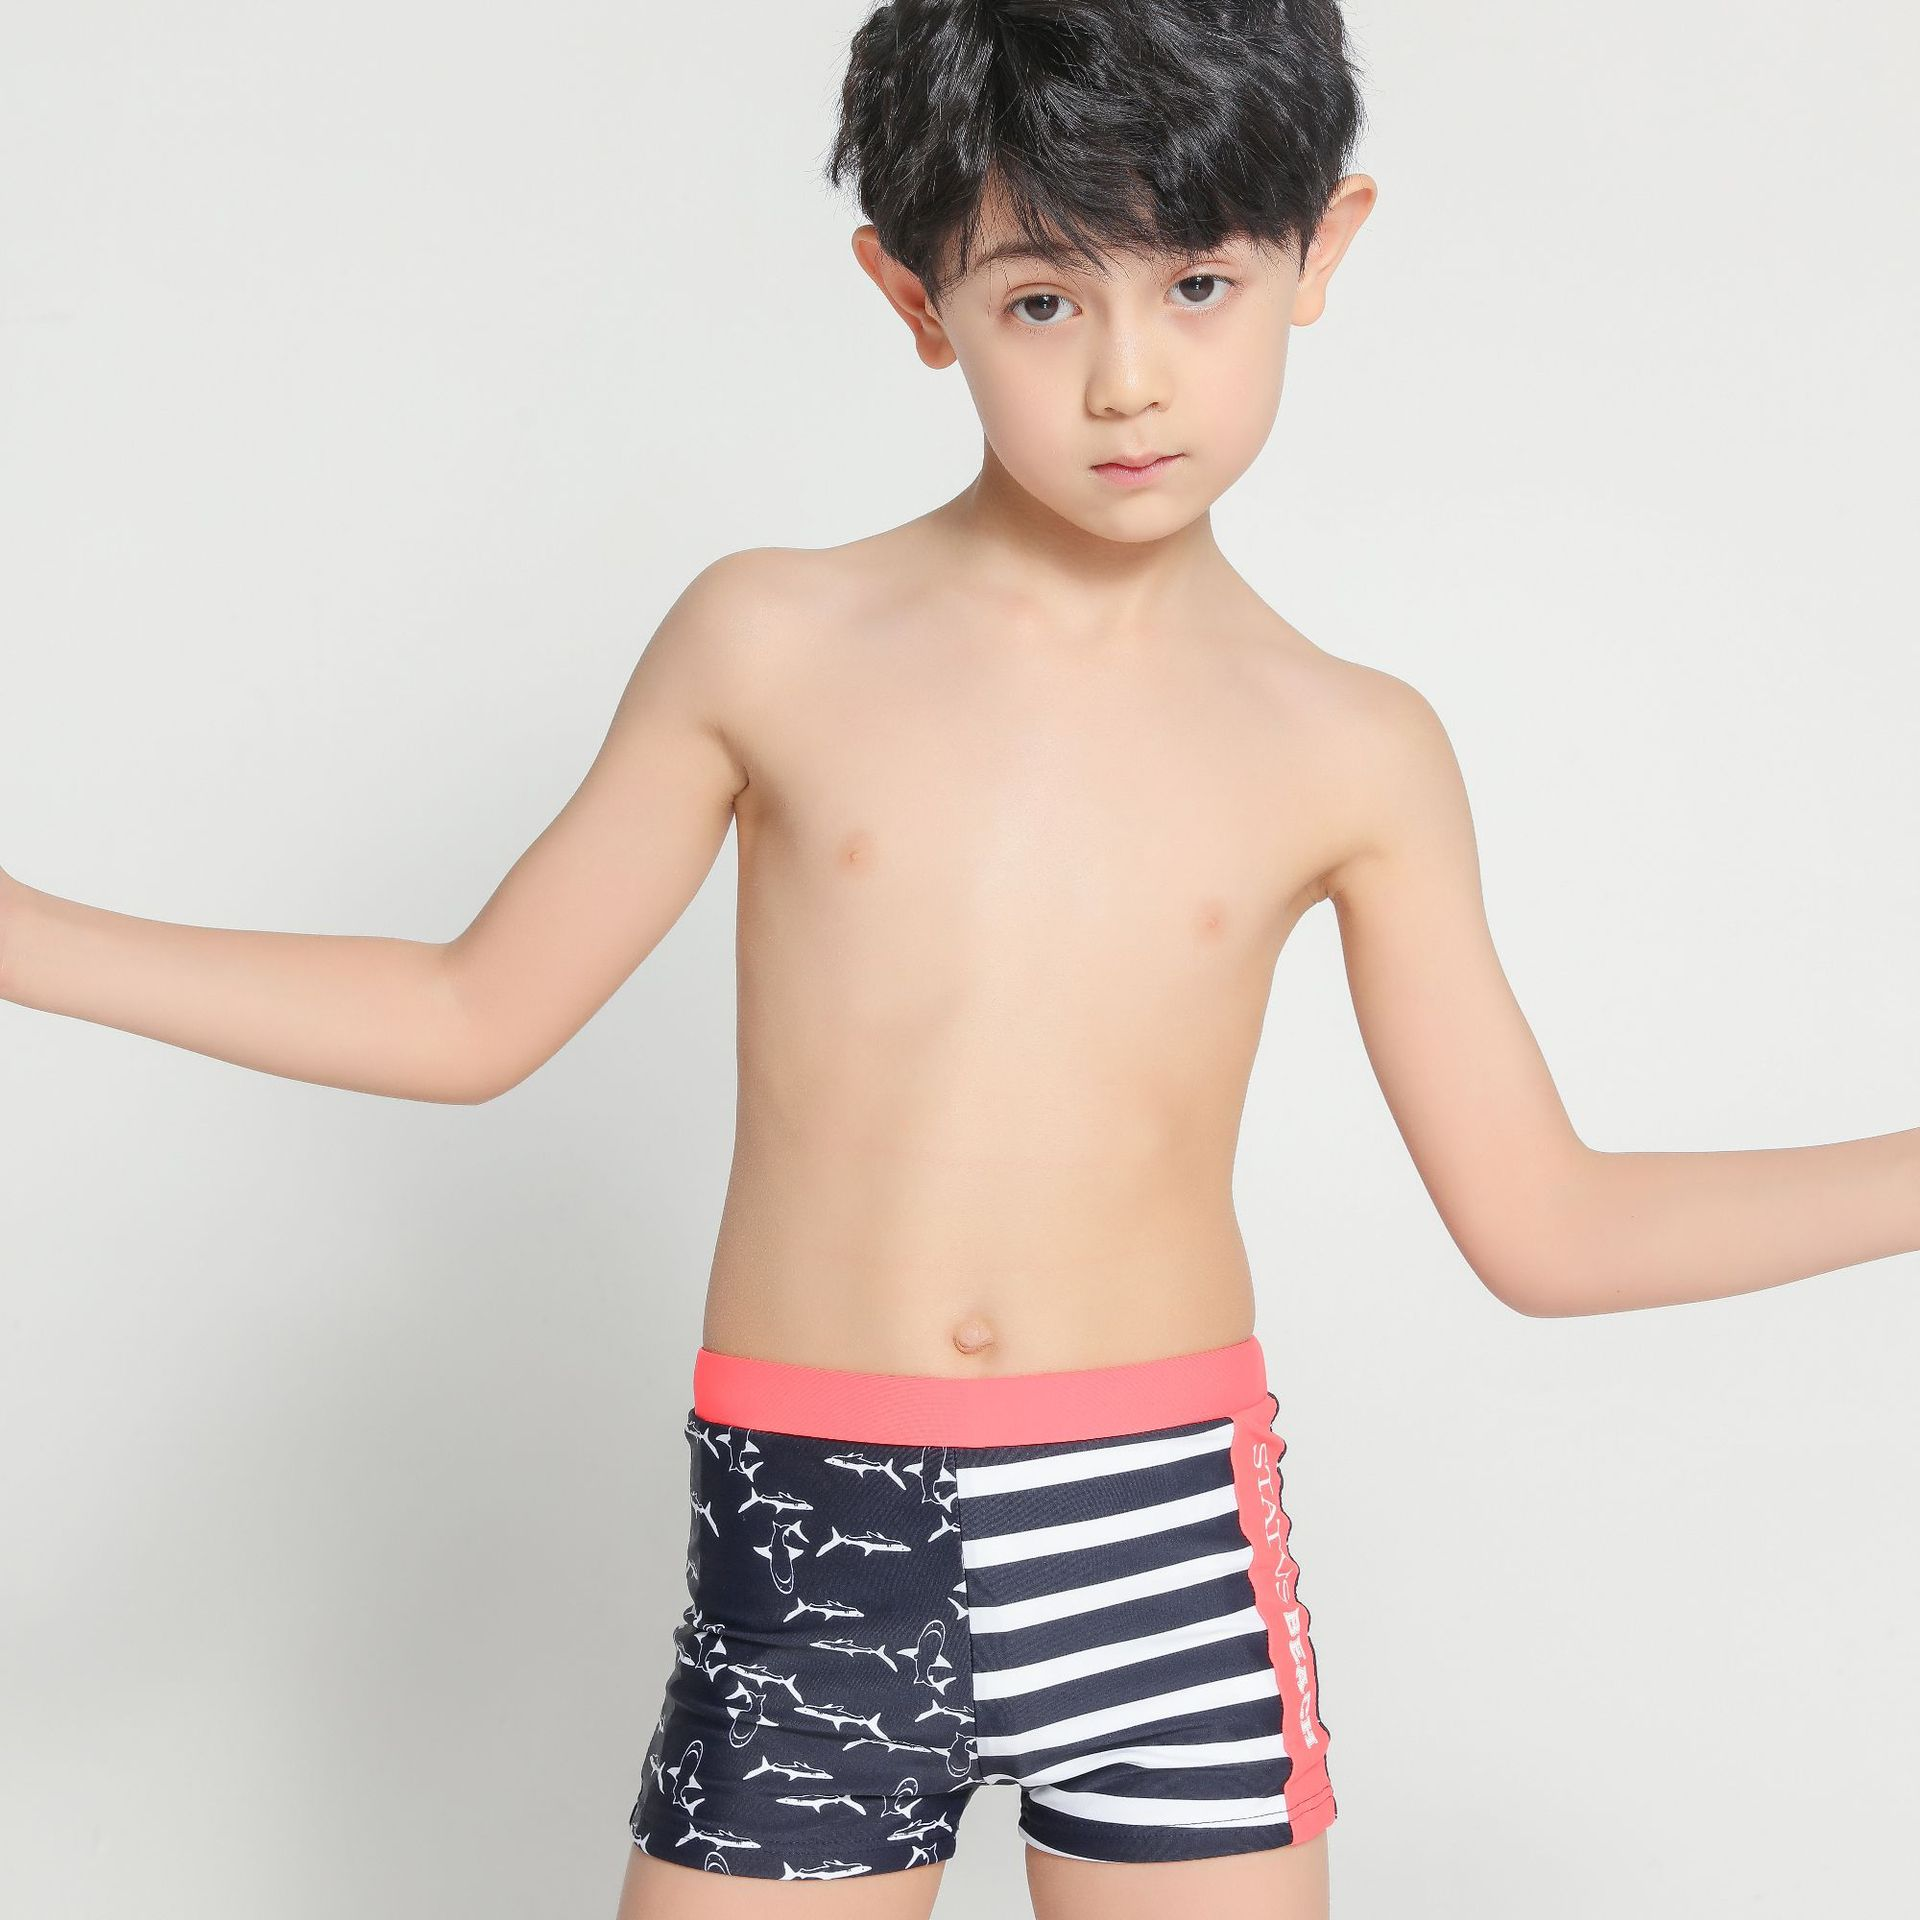 BOY'S Swimming Trunks A Generation Of Fat Big Kid Boxer Swimming Trunks Bubble Hot Spring Swimming Trunks Swimsuit Factory